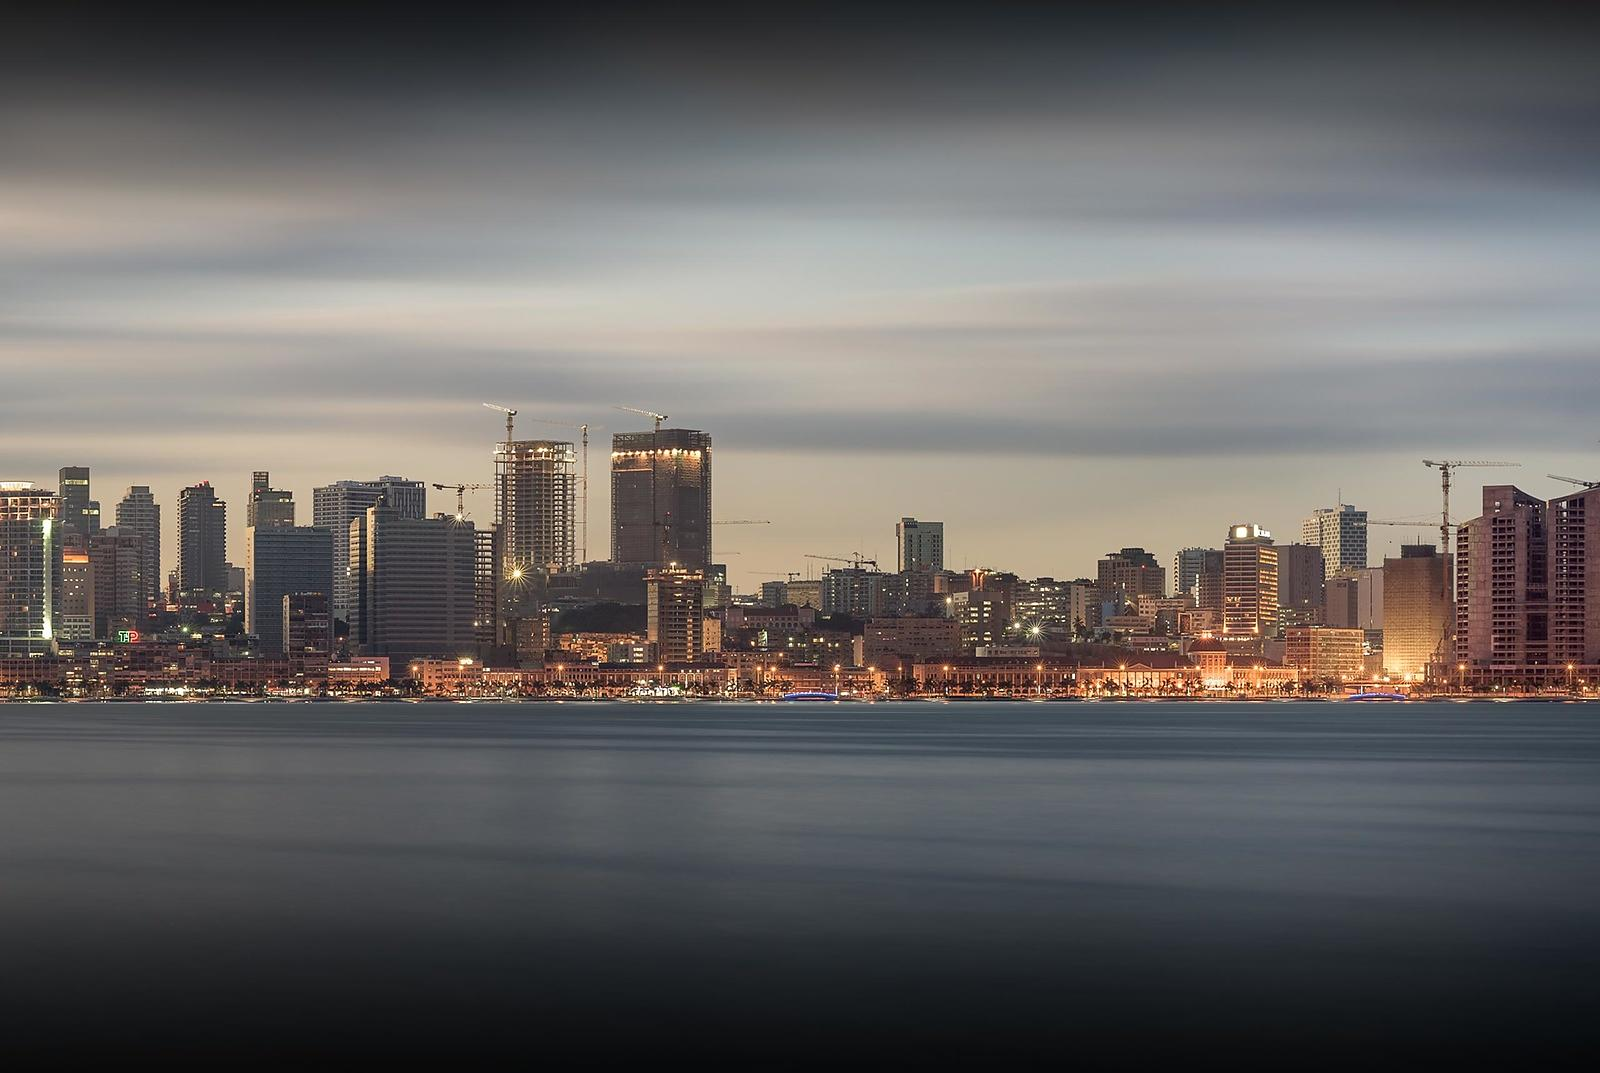 Luanda as seen from the bay